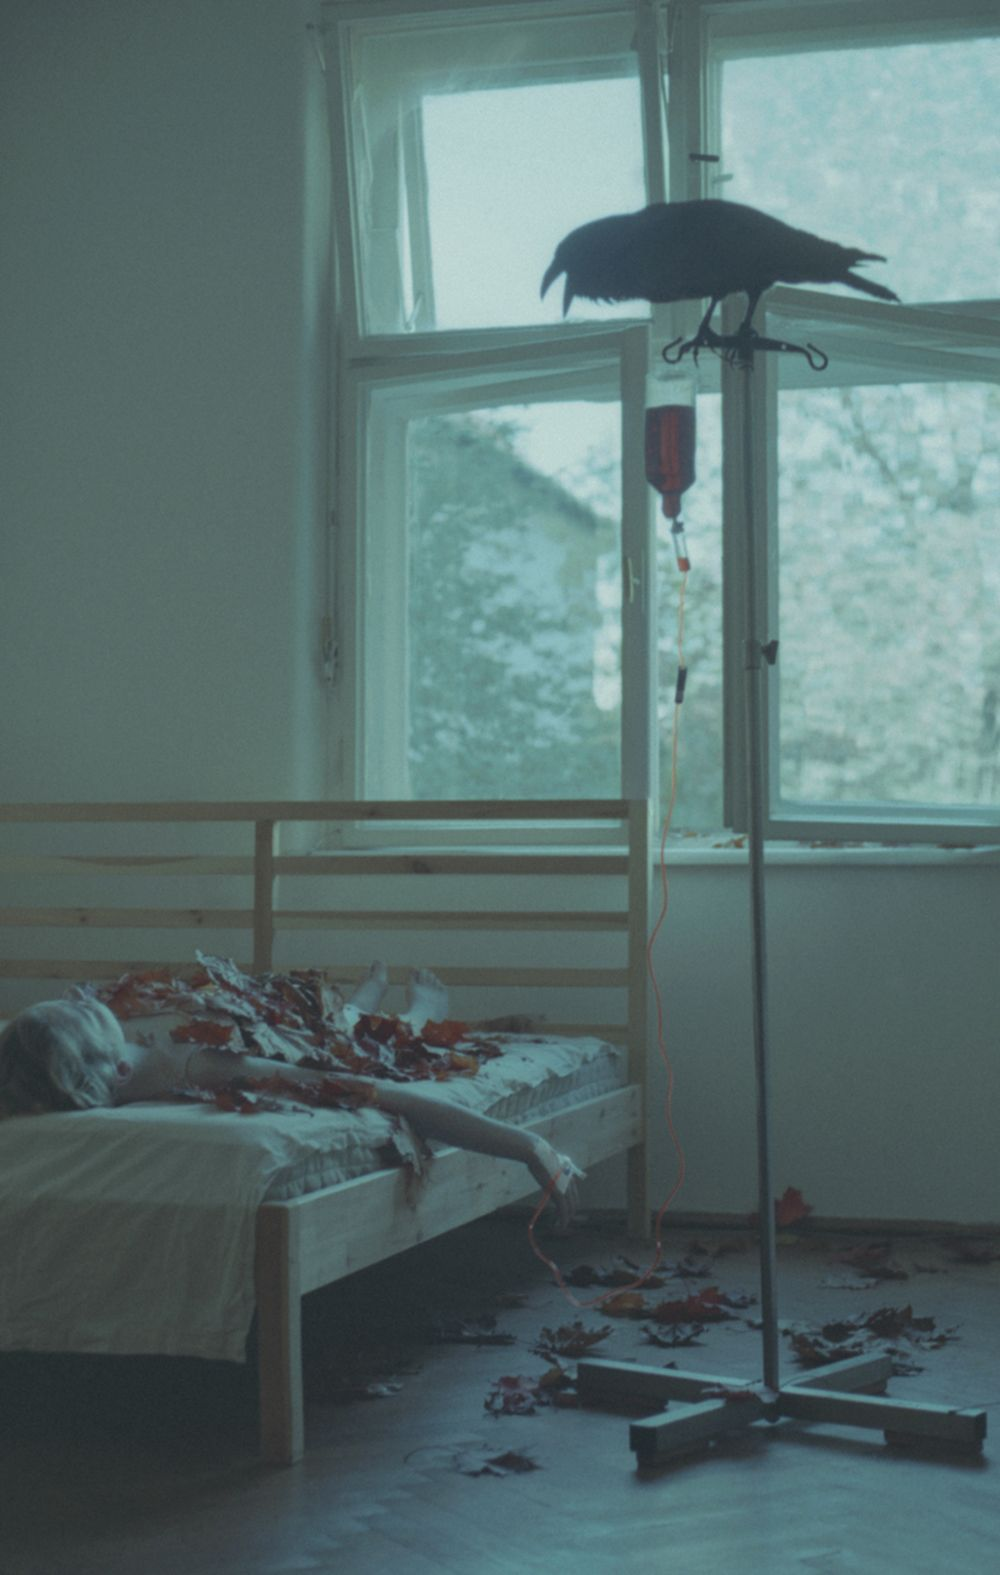 Poetic and Grim Photographs by Laura Makabresku  — The Artbo